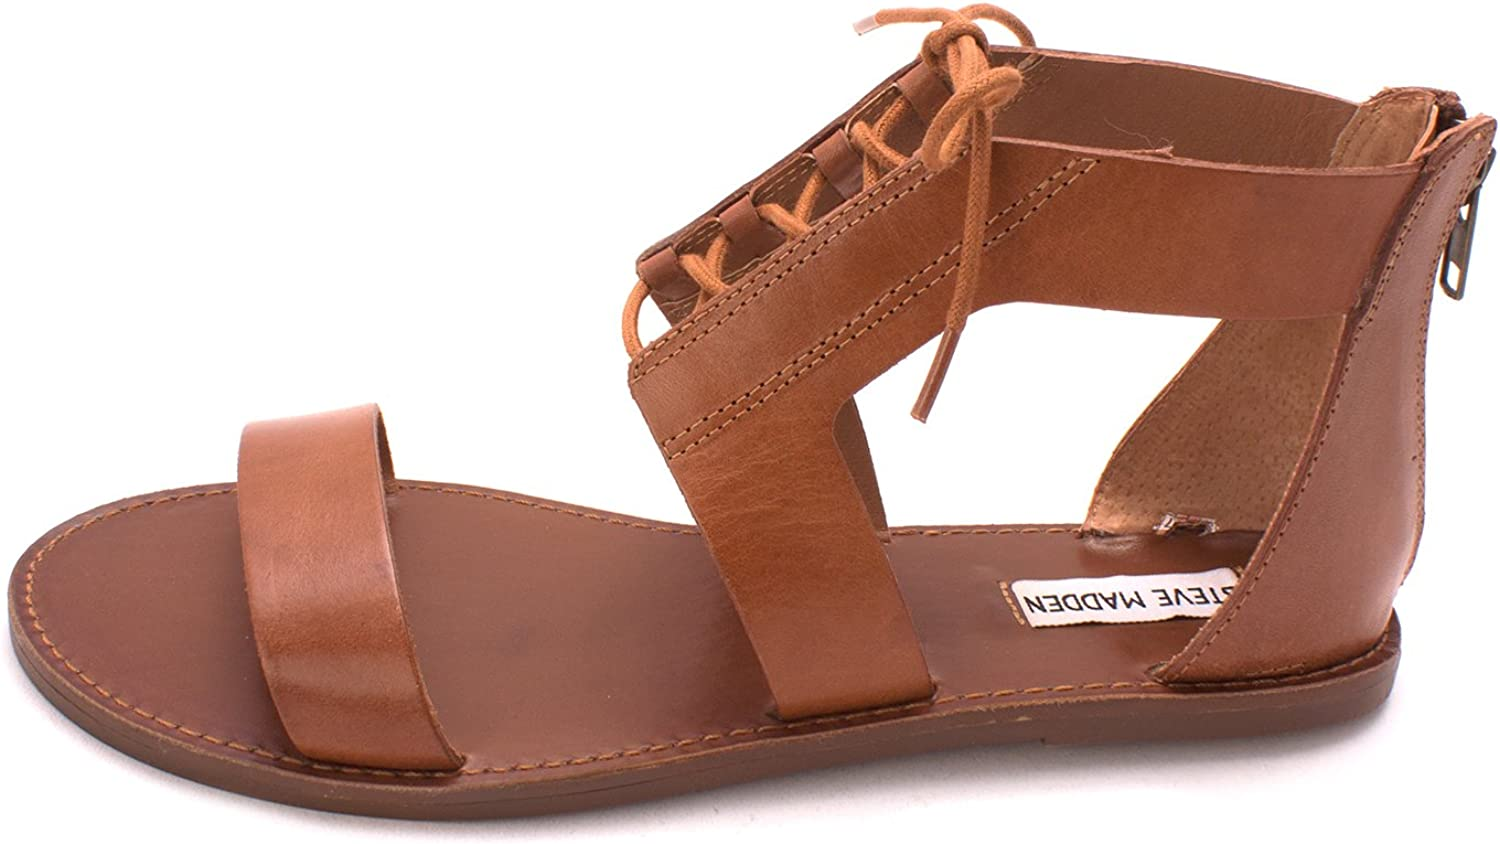 Steve Madden Womens Delgado Leather Open Toe Casual Strappy Sandals